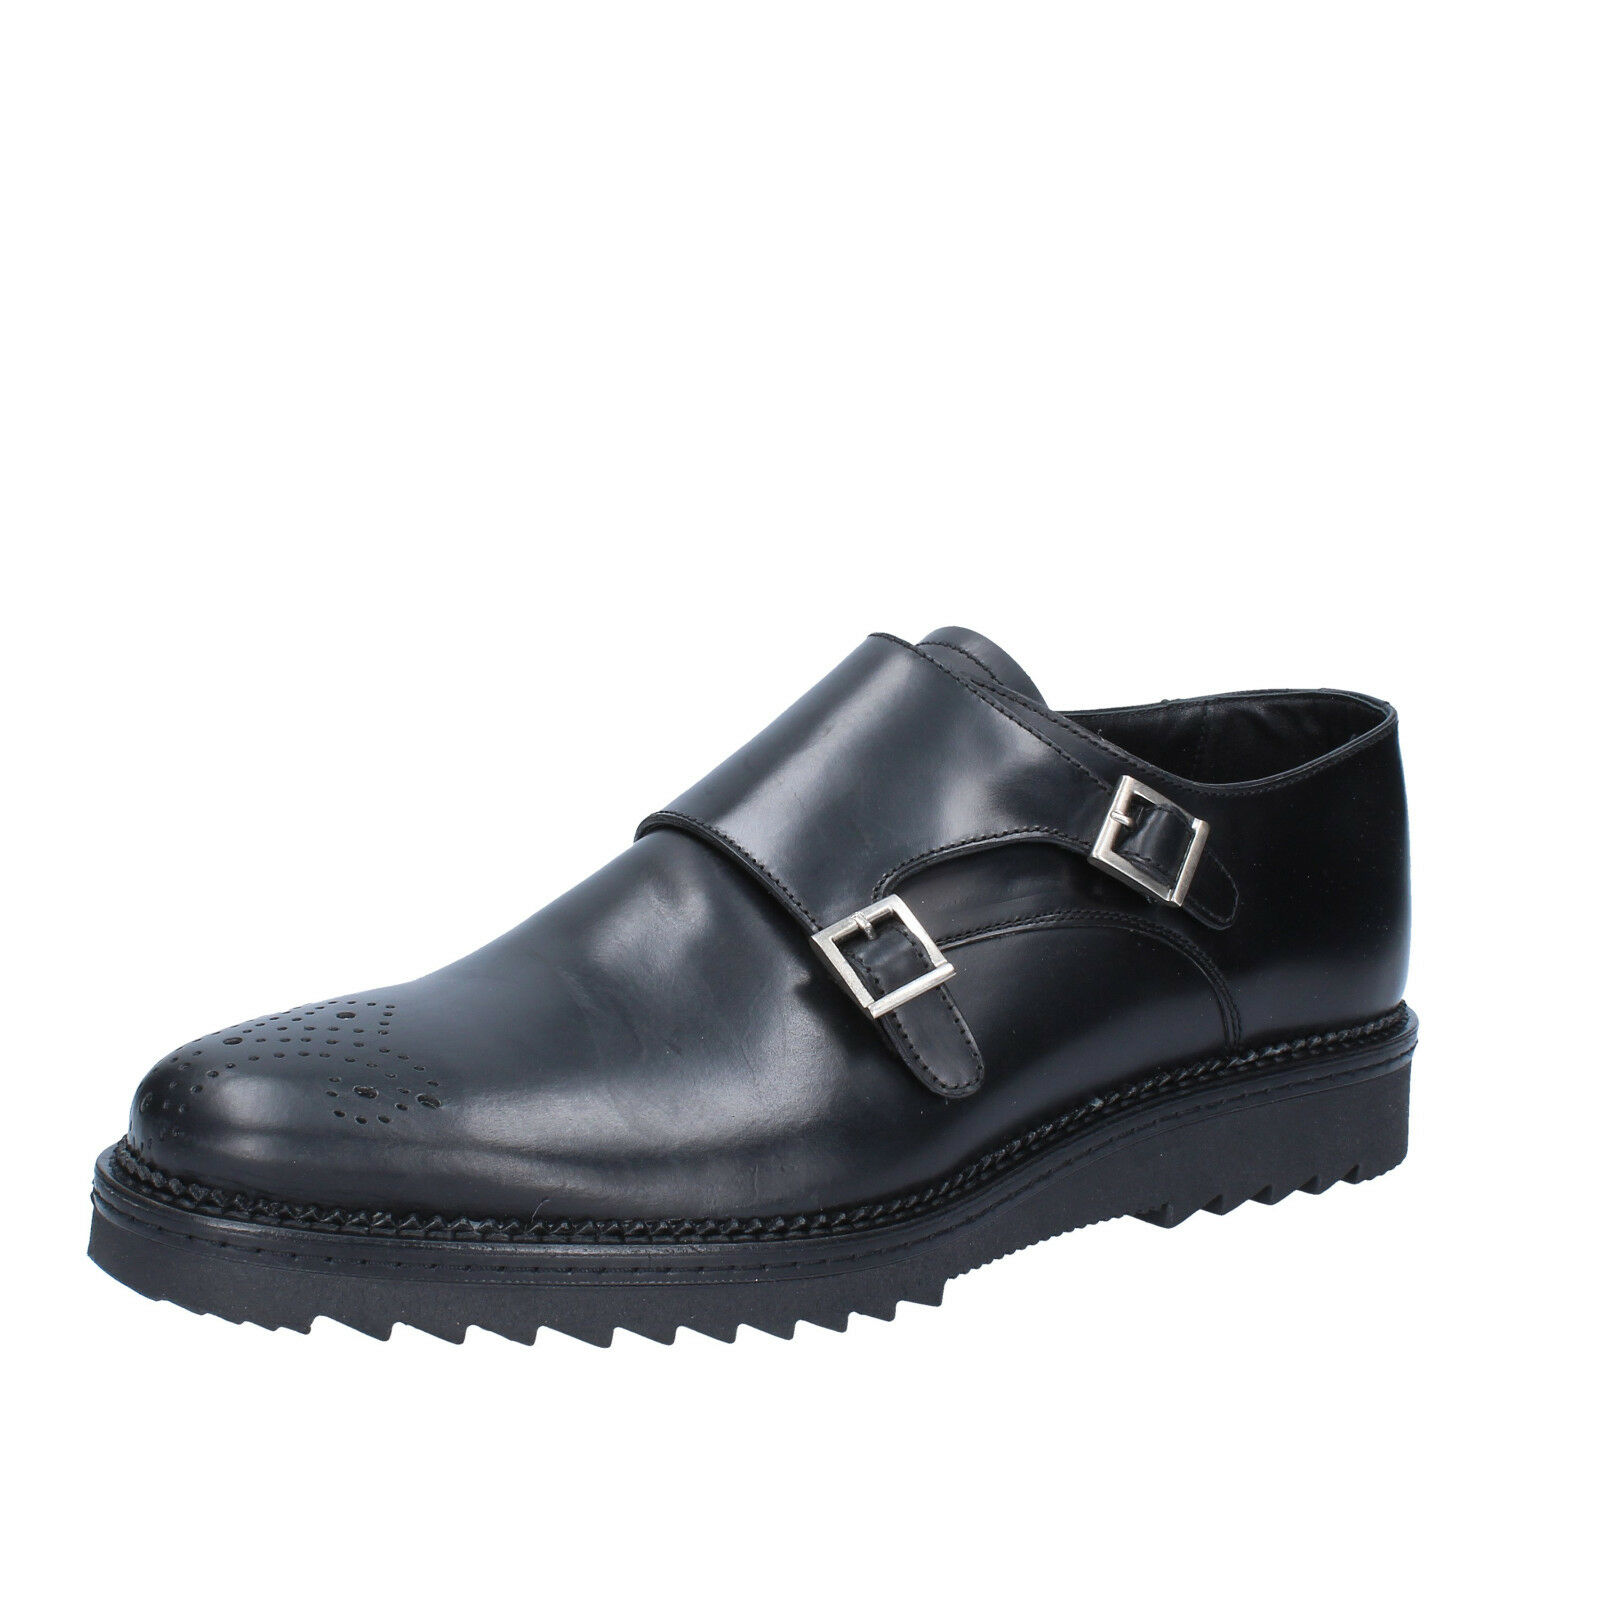 Mens shoes SALVO BARONE 8 ( EU 42 ) elegant black leather  BZ151-E